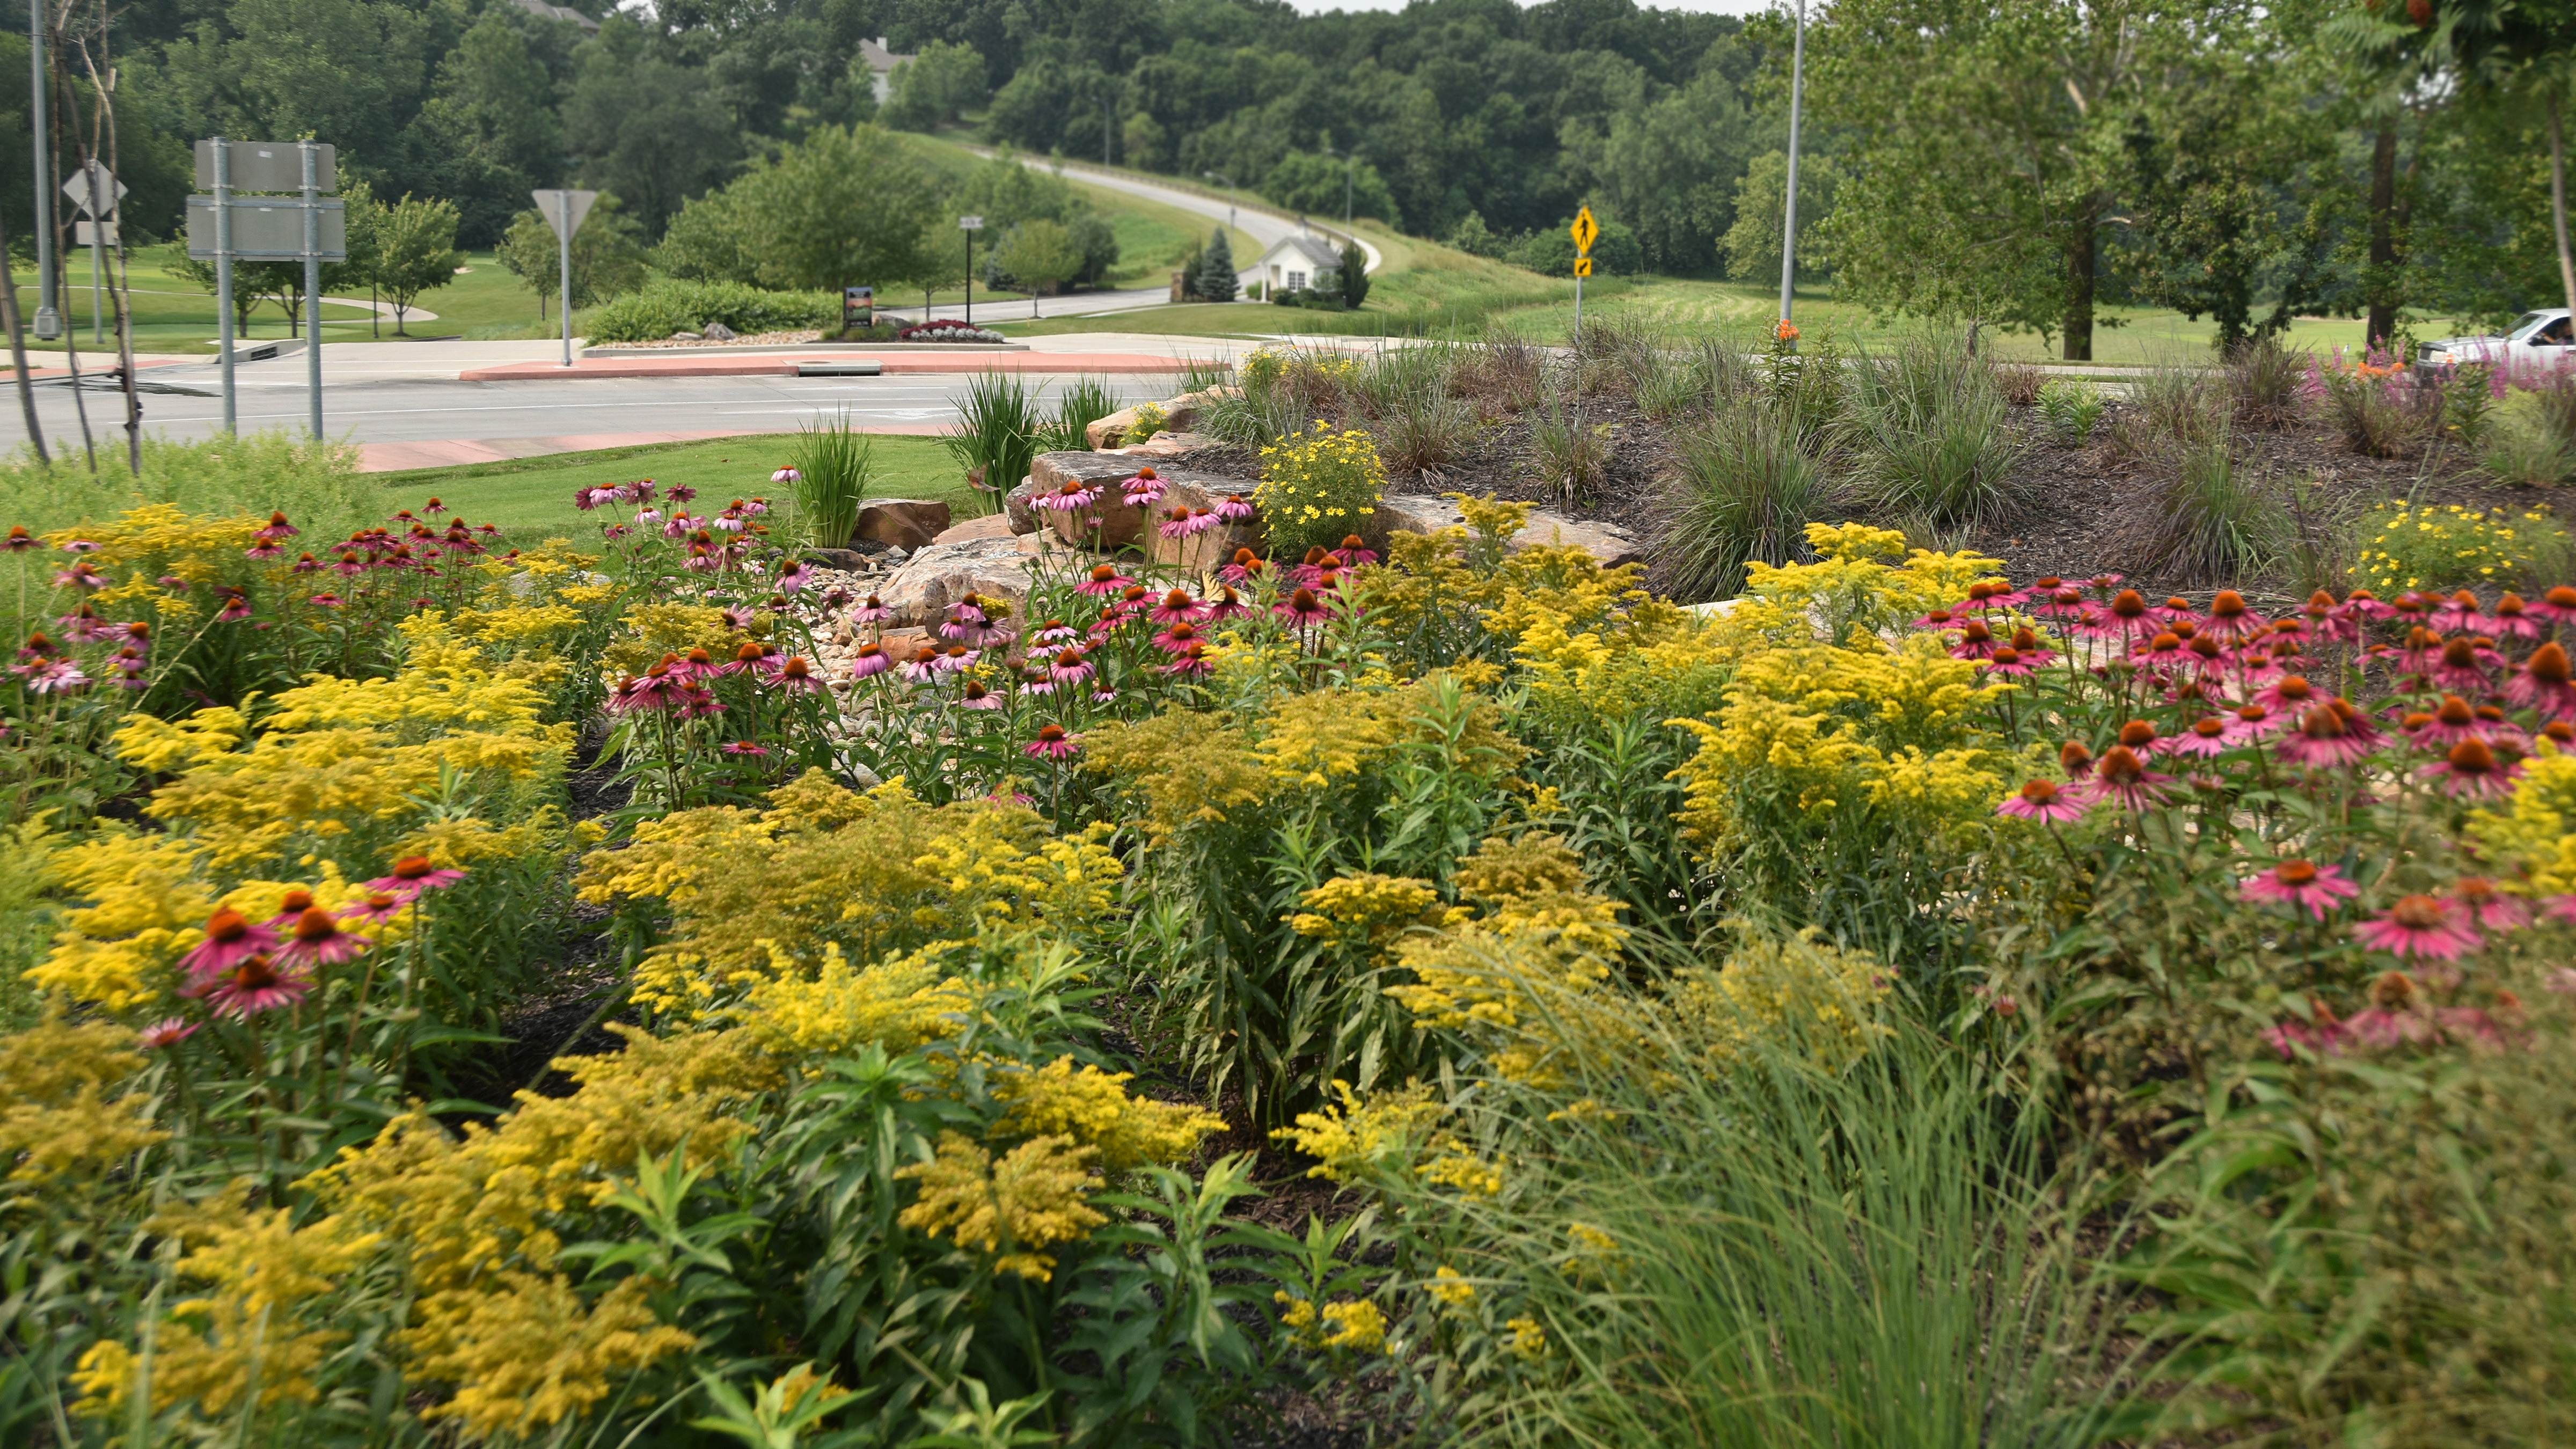 Beds of native plants in full bloom bring a sense of Place to the surrounding neighborhoods.